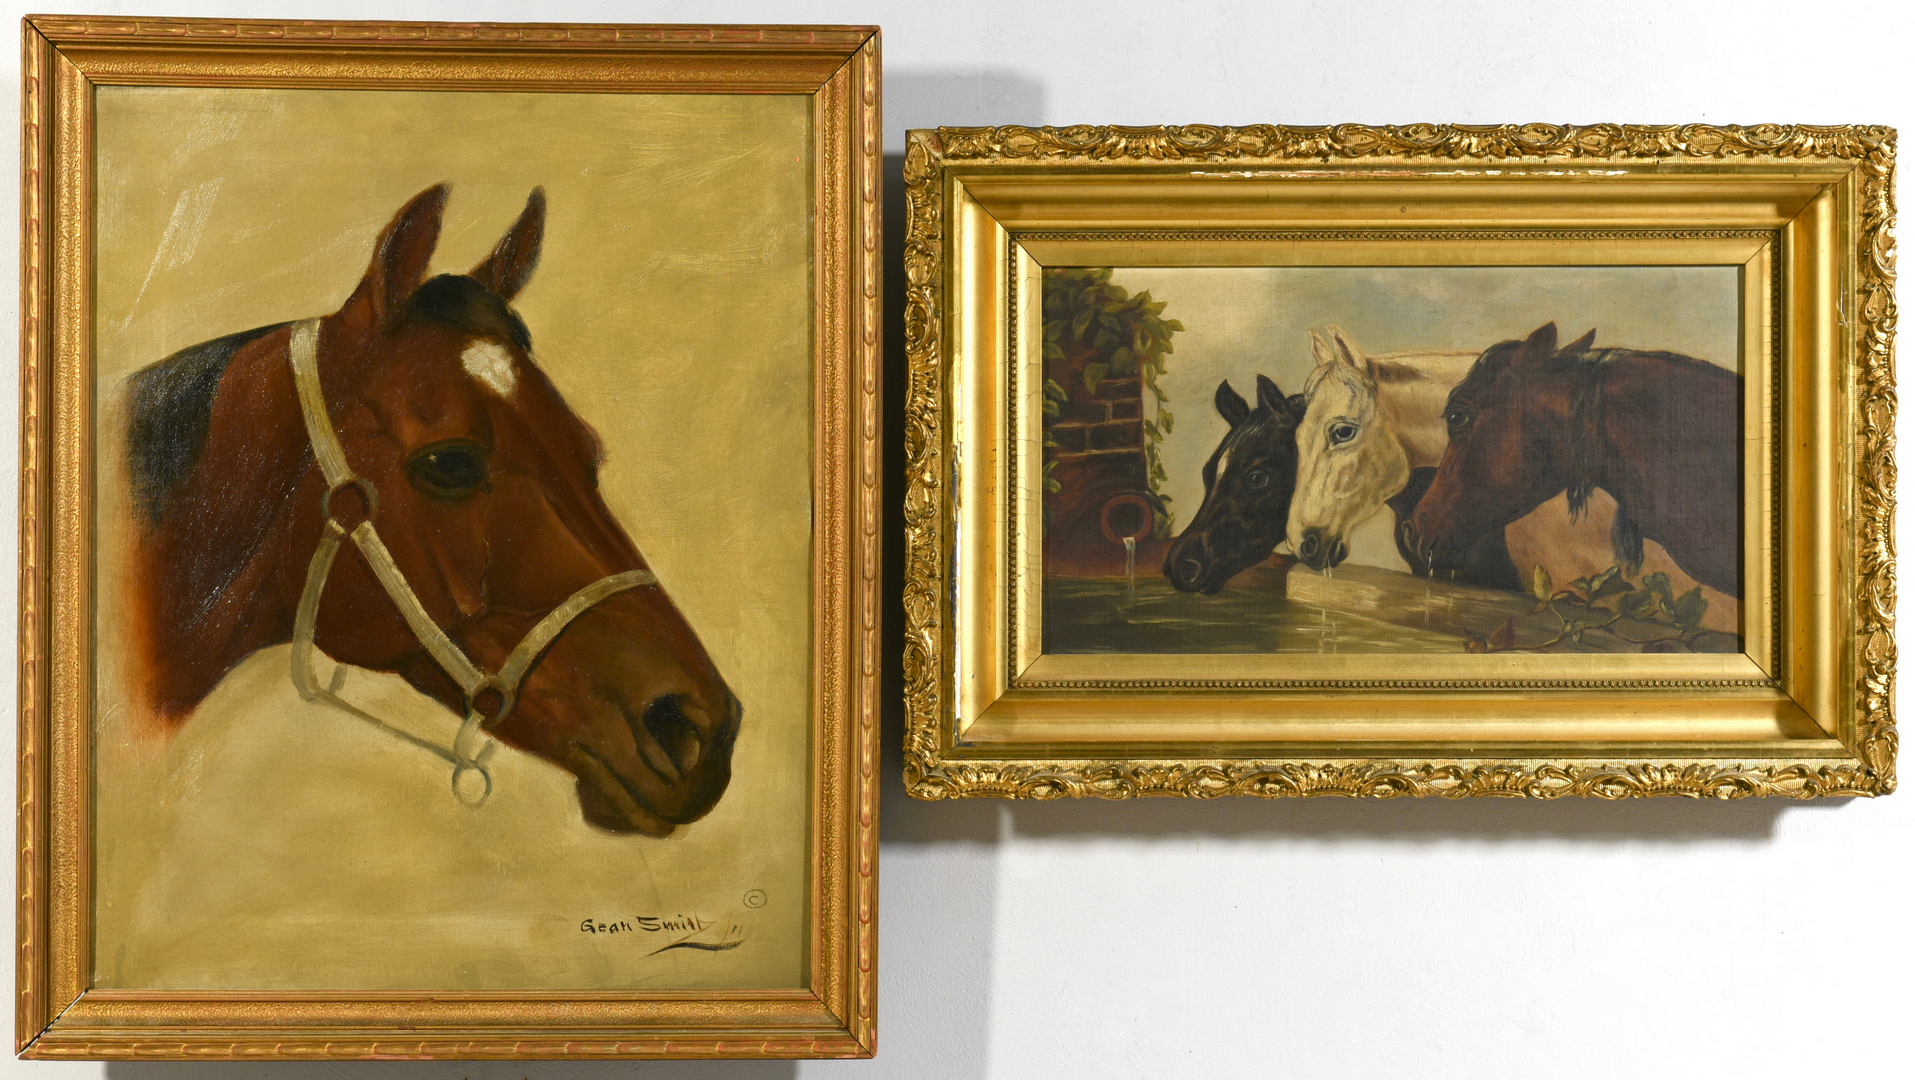 Lot 527 2 Oil On Canvas Horse Paintings Incl Gean Smith